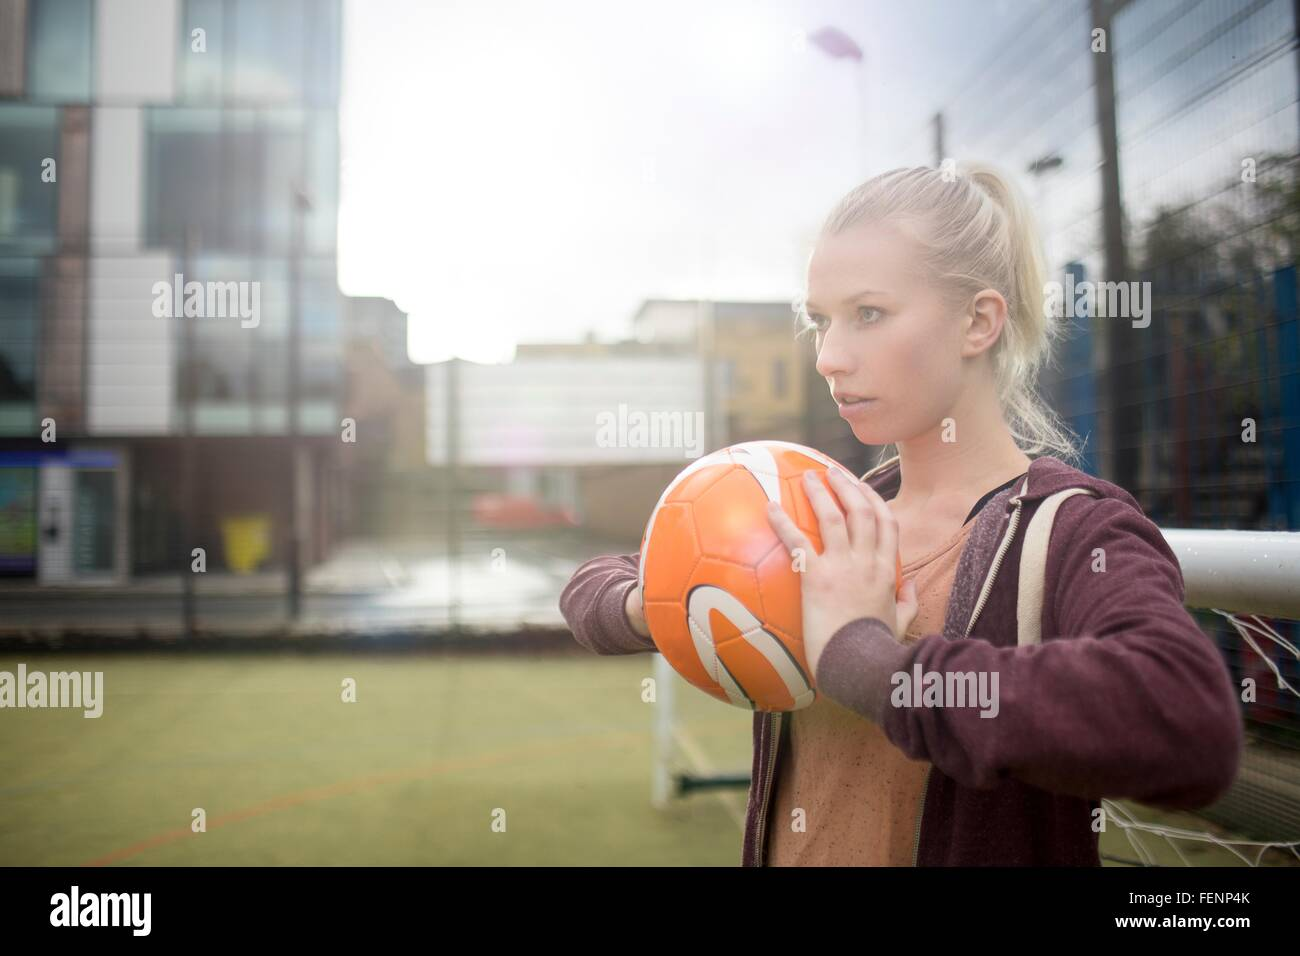 Young woman about to throw football - Stock Image